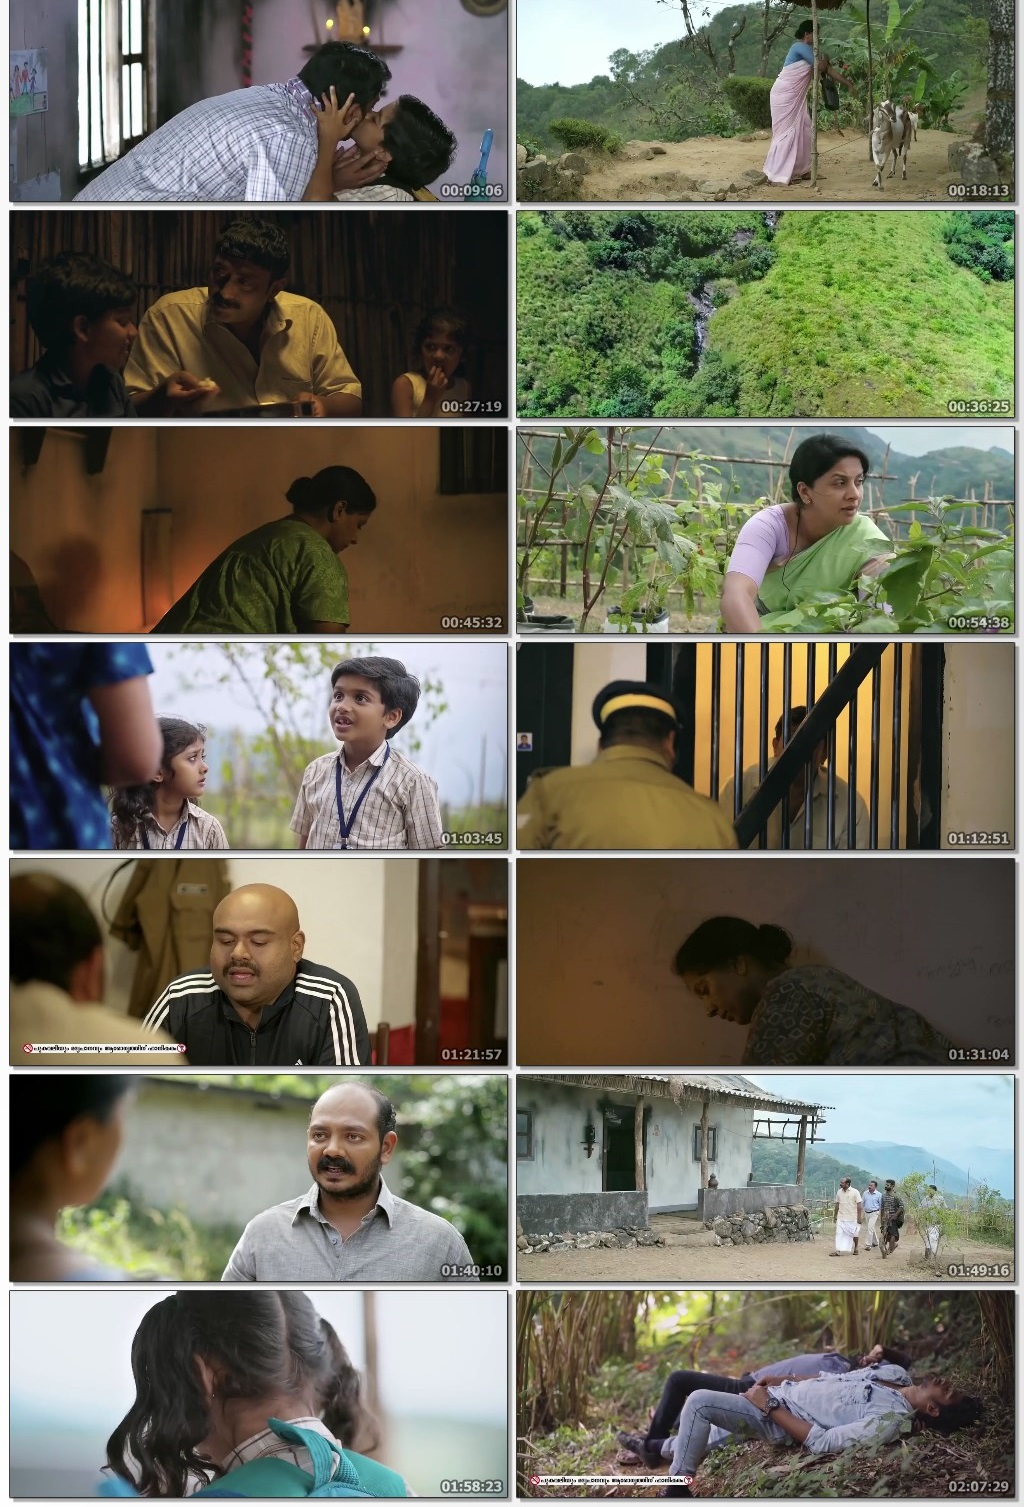 Kaatinarike-2021-www-9kmovies-cool-Malayalam-720p-HDRip-1-4-GB-mkv-thumbs